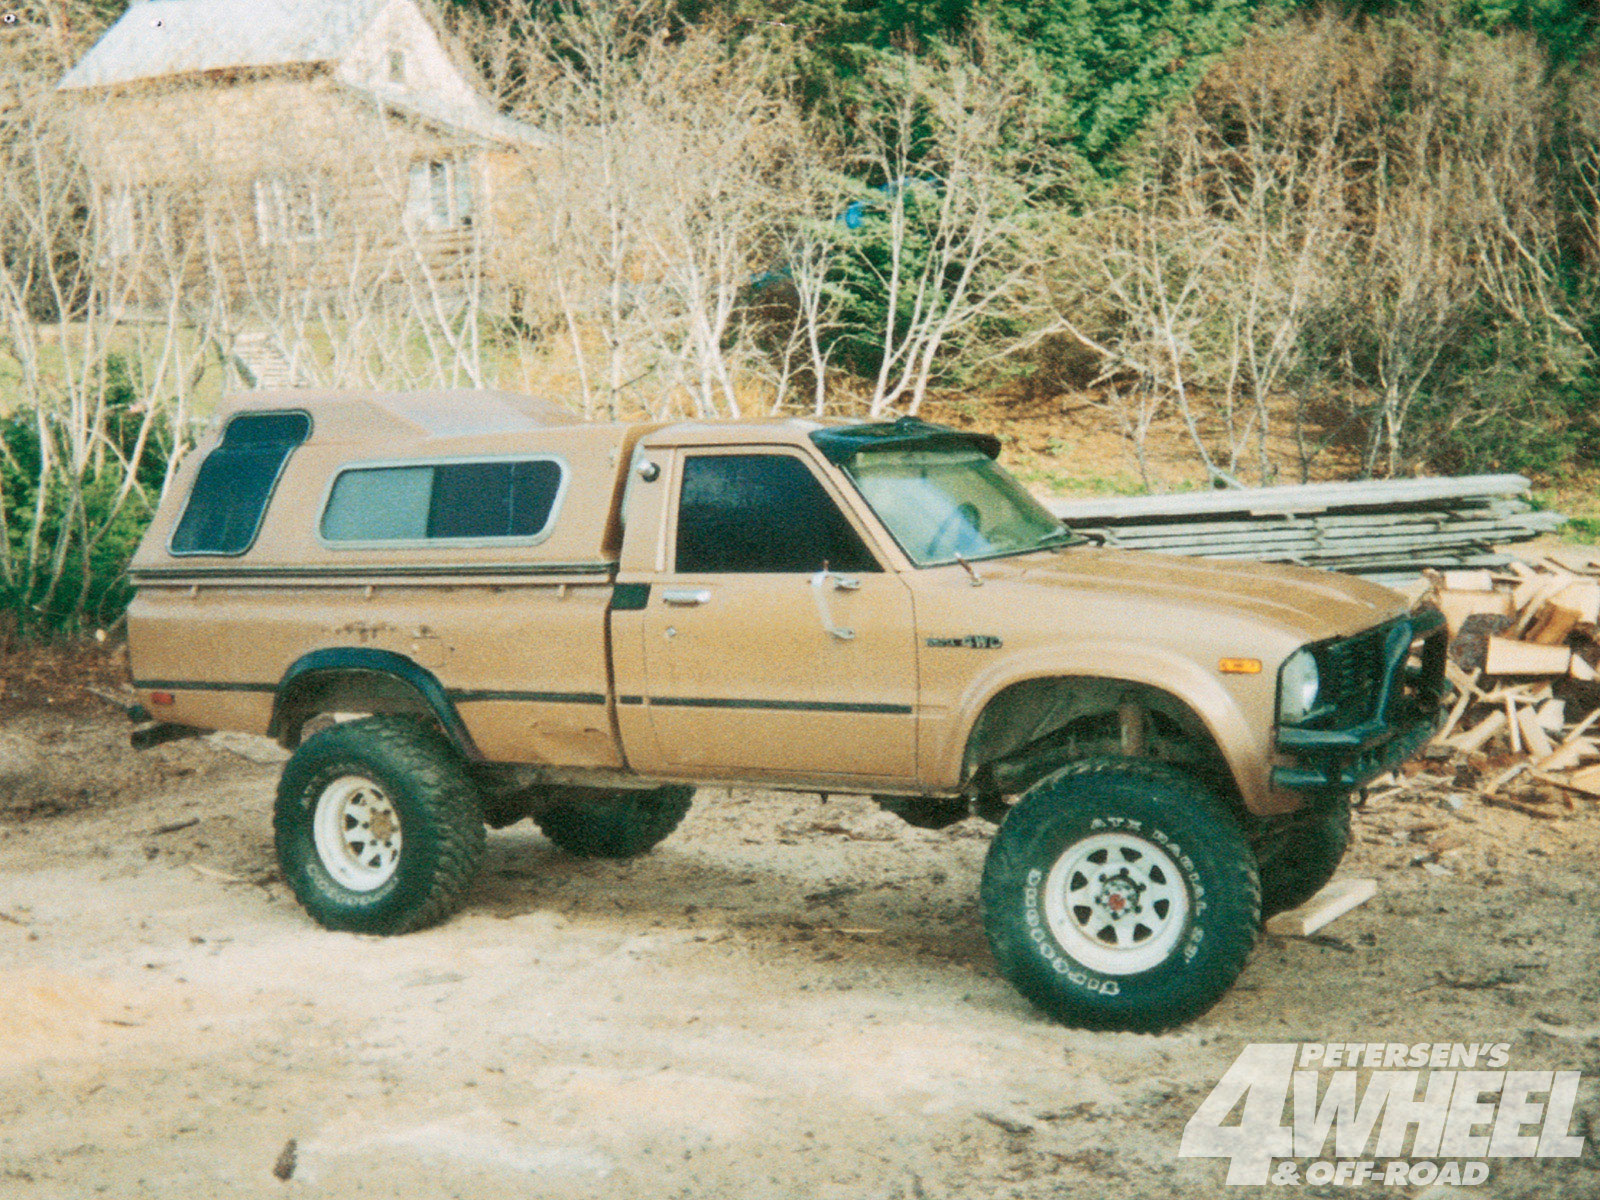 131 9802 01 o+131 9802 february 1998 readers rides+1981 toyota pickup truck